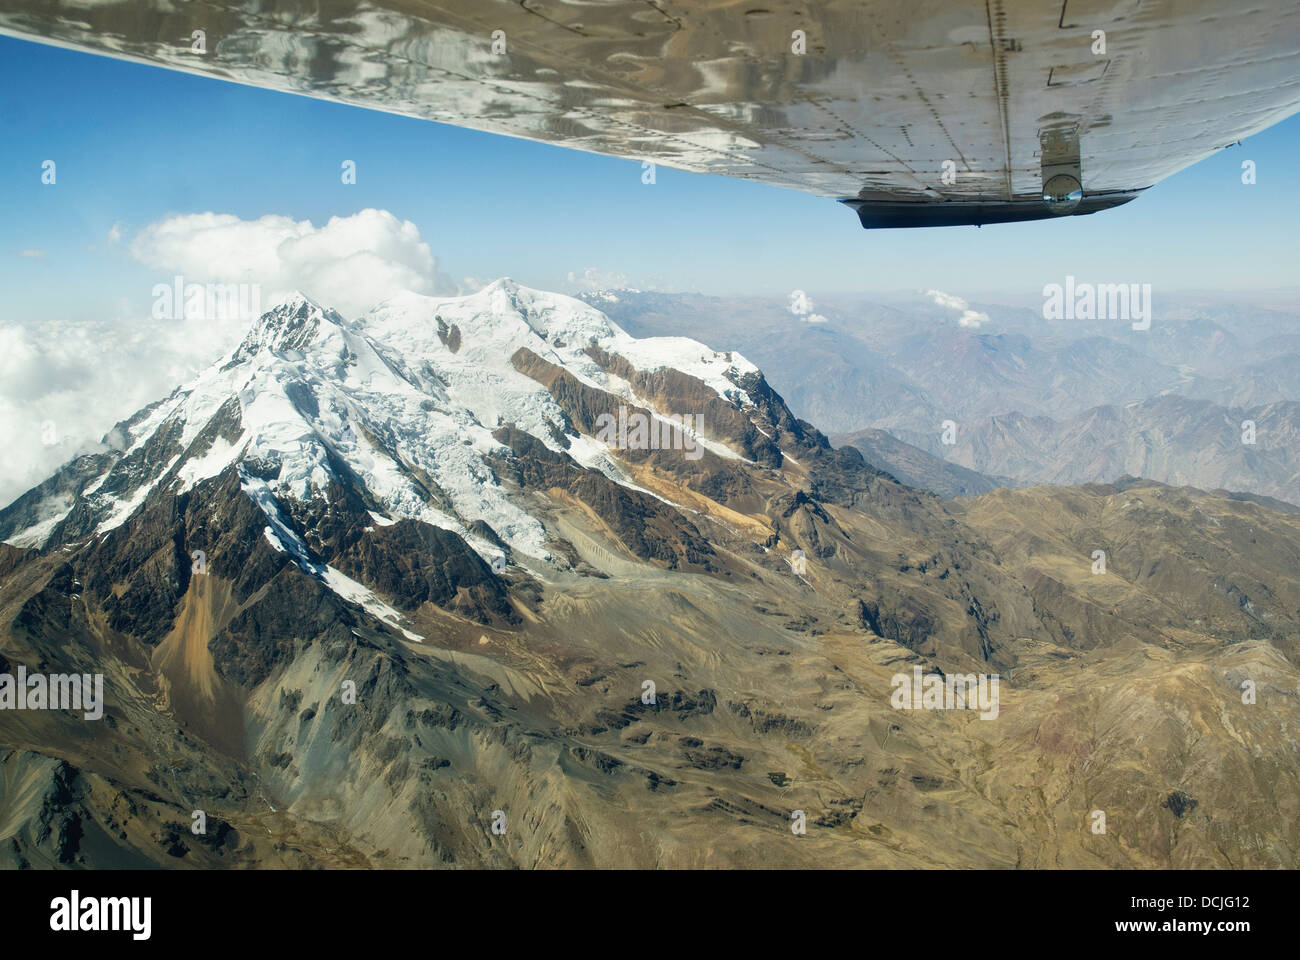 Aerial view of the mountain Illimani - Stock Image